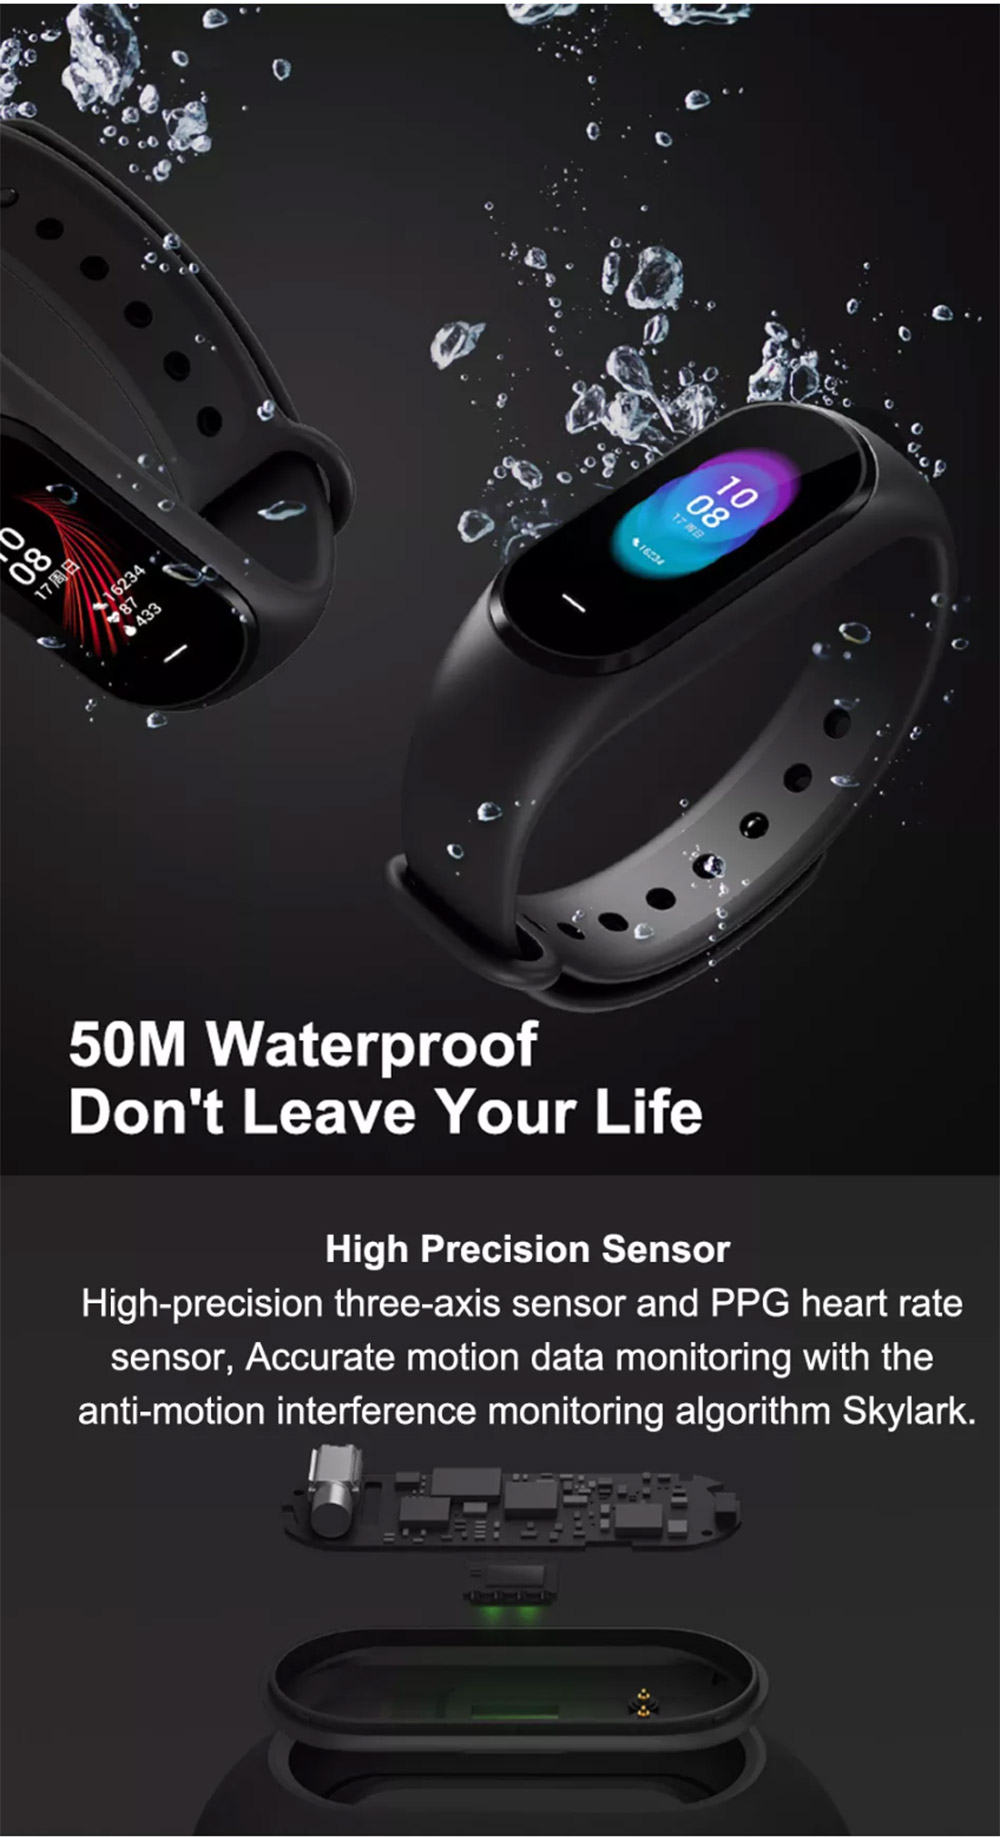 Xiaomi Hey Plus Smart Bracelet 0.95 Inch AMOLED Color Screen Built-in Multifunction Heart Rate Monitor 5ATM Water Resistant 18 Days Standby Swimming Mode - Black